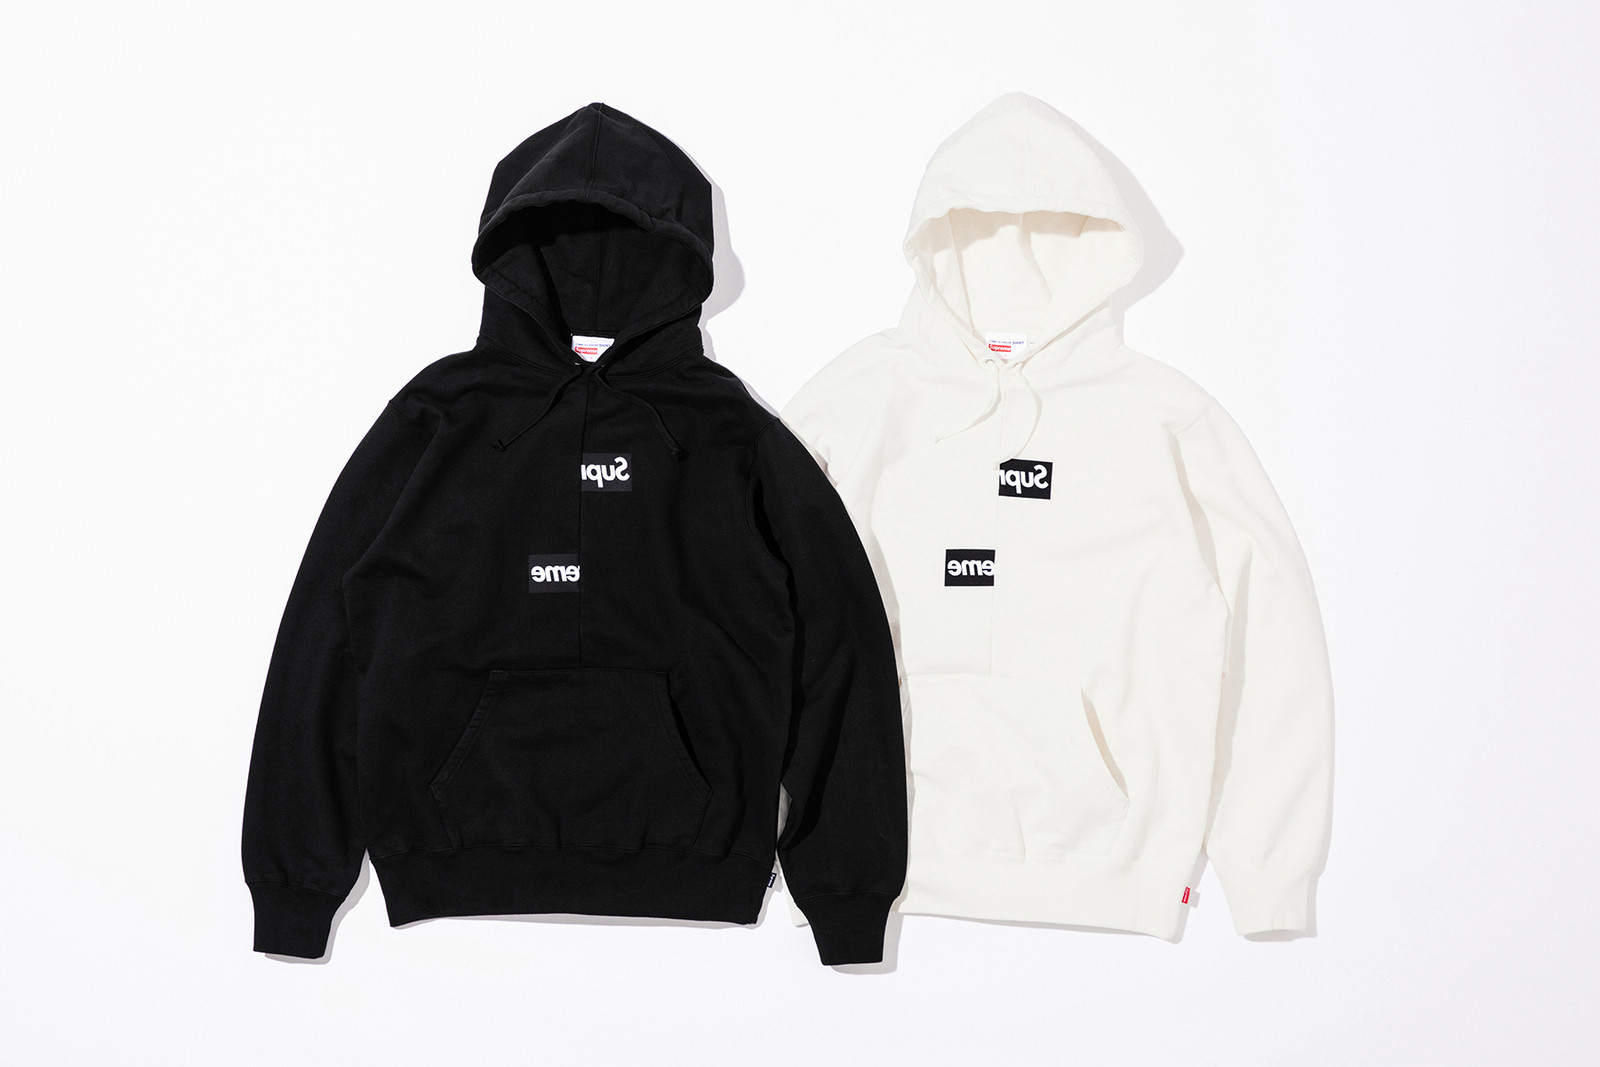 Supreme Fall/Winter 2018 Drop 5 Release Info kazuki kuraishi the north face black collection bape Predator Guerrilla Group New York Yankees Gucci Verdy Undercover Wasted Youth